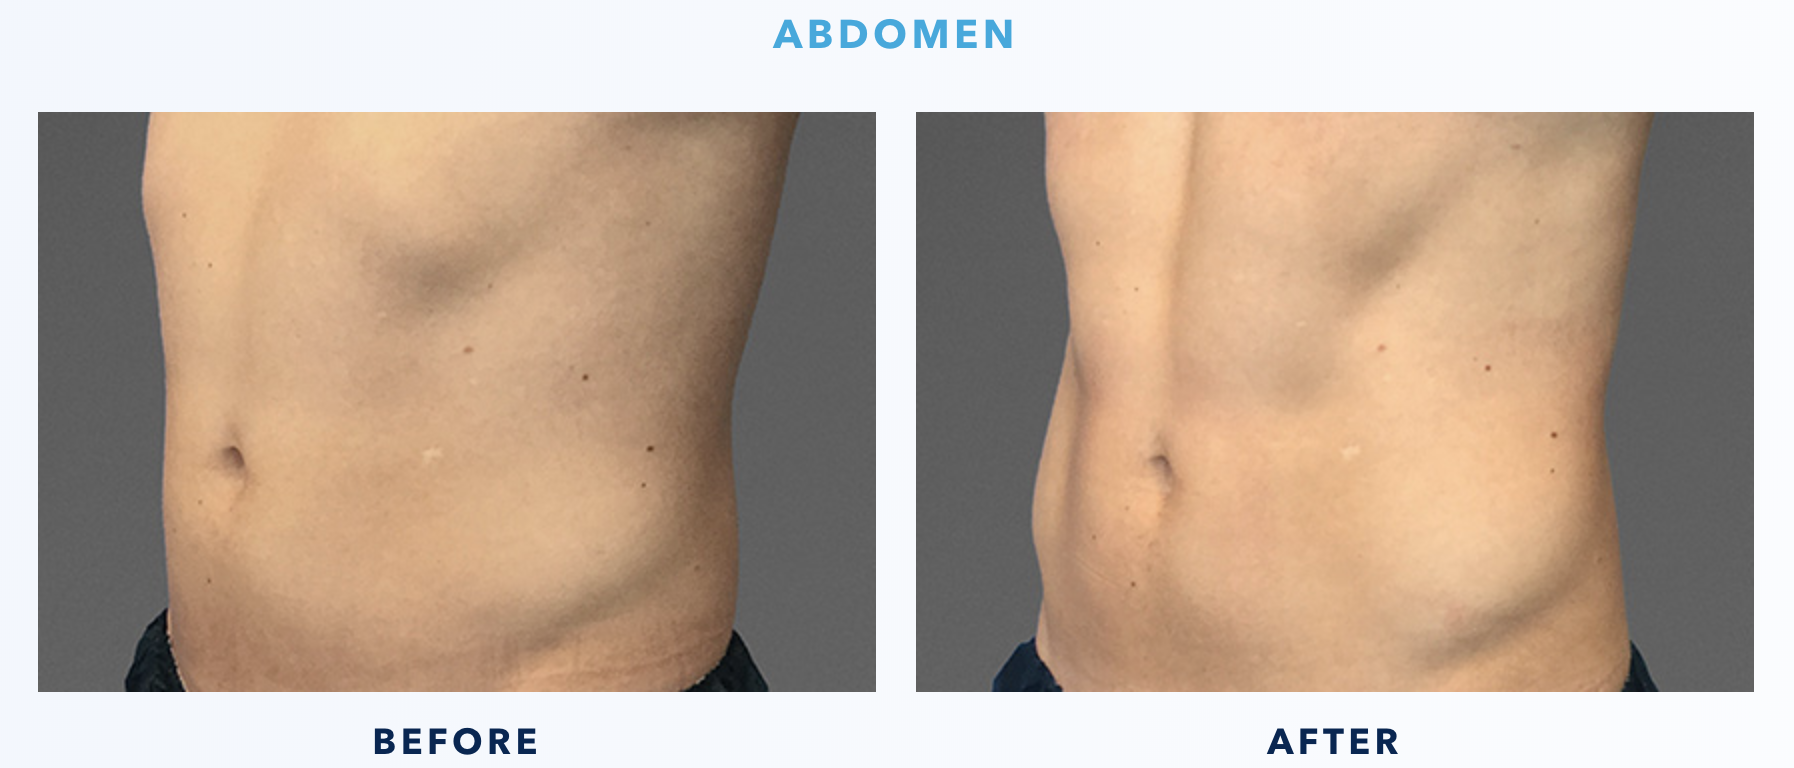 CoolTone Before & After Abdomen Male 3